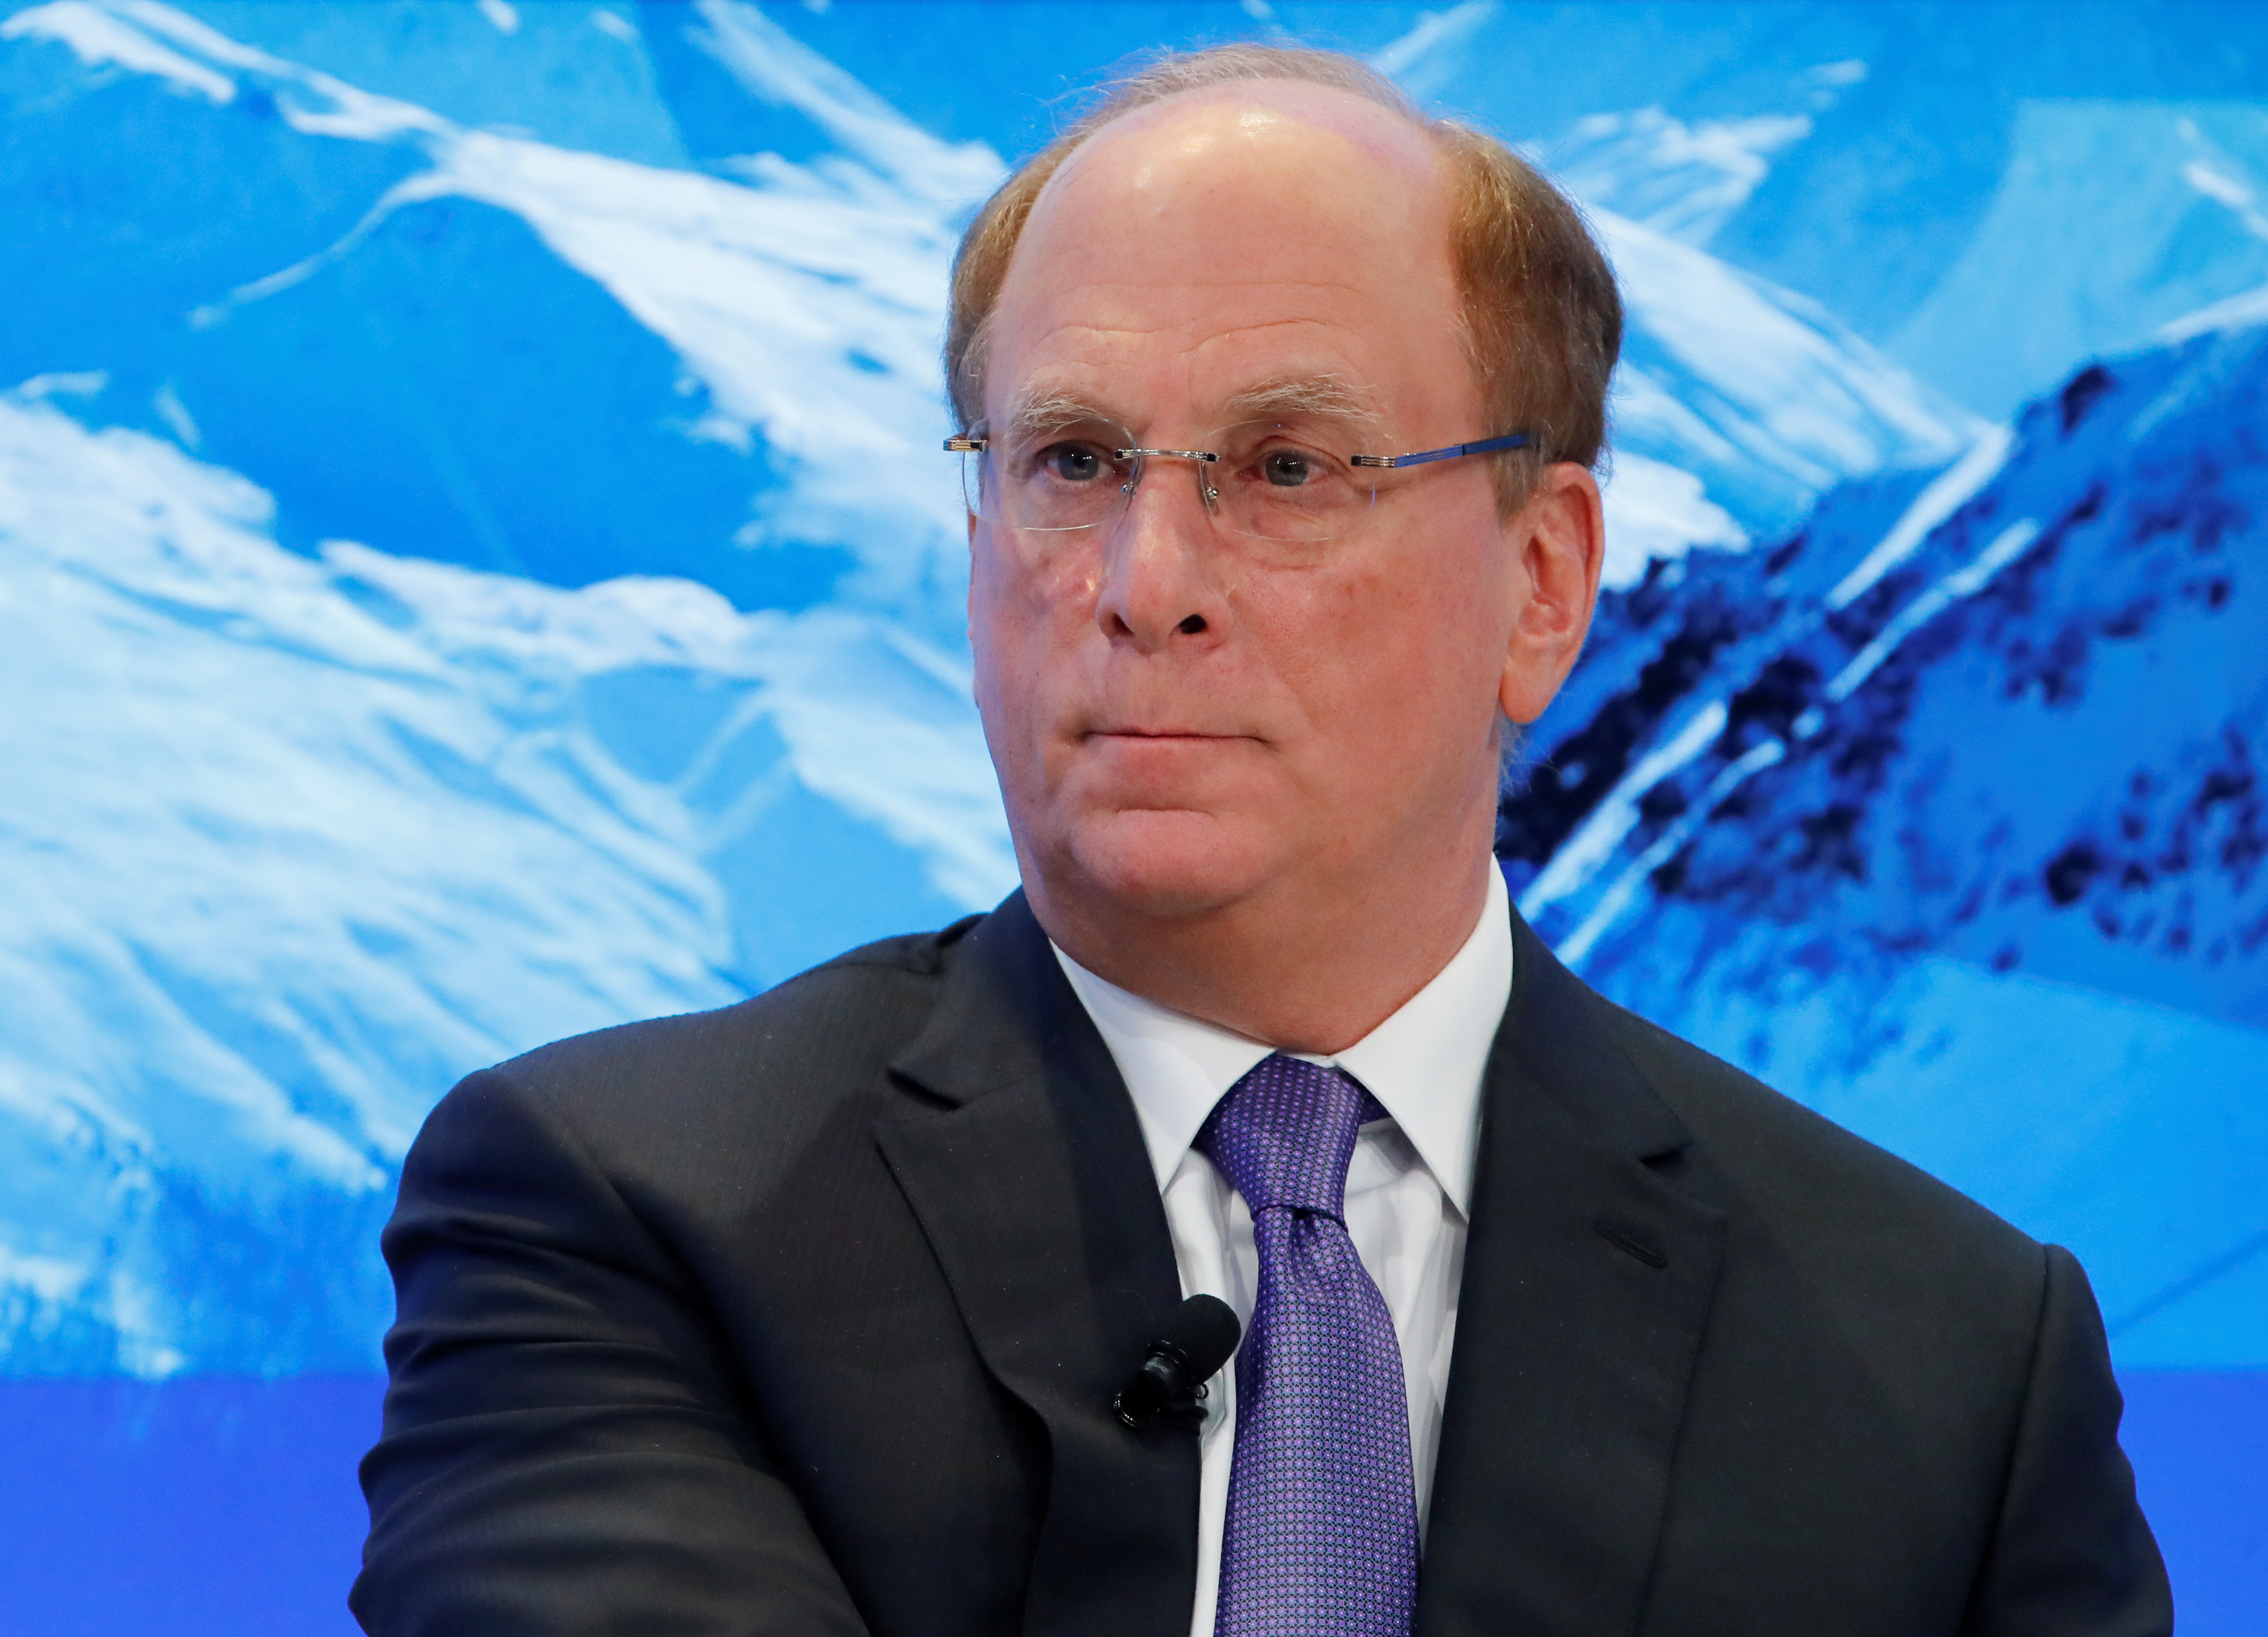 Laurence D. Fink, chairman and CEO of BlackRock, attends the World Economic Forum annual meeting in Davos, January 25, 2018. REUTERS/Denis Balibouse